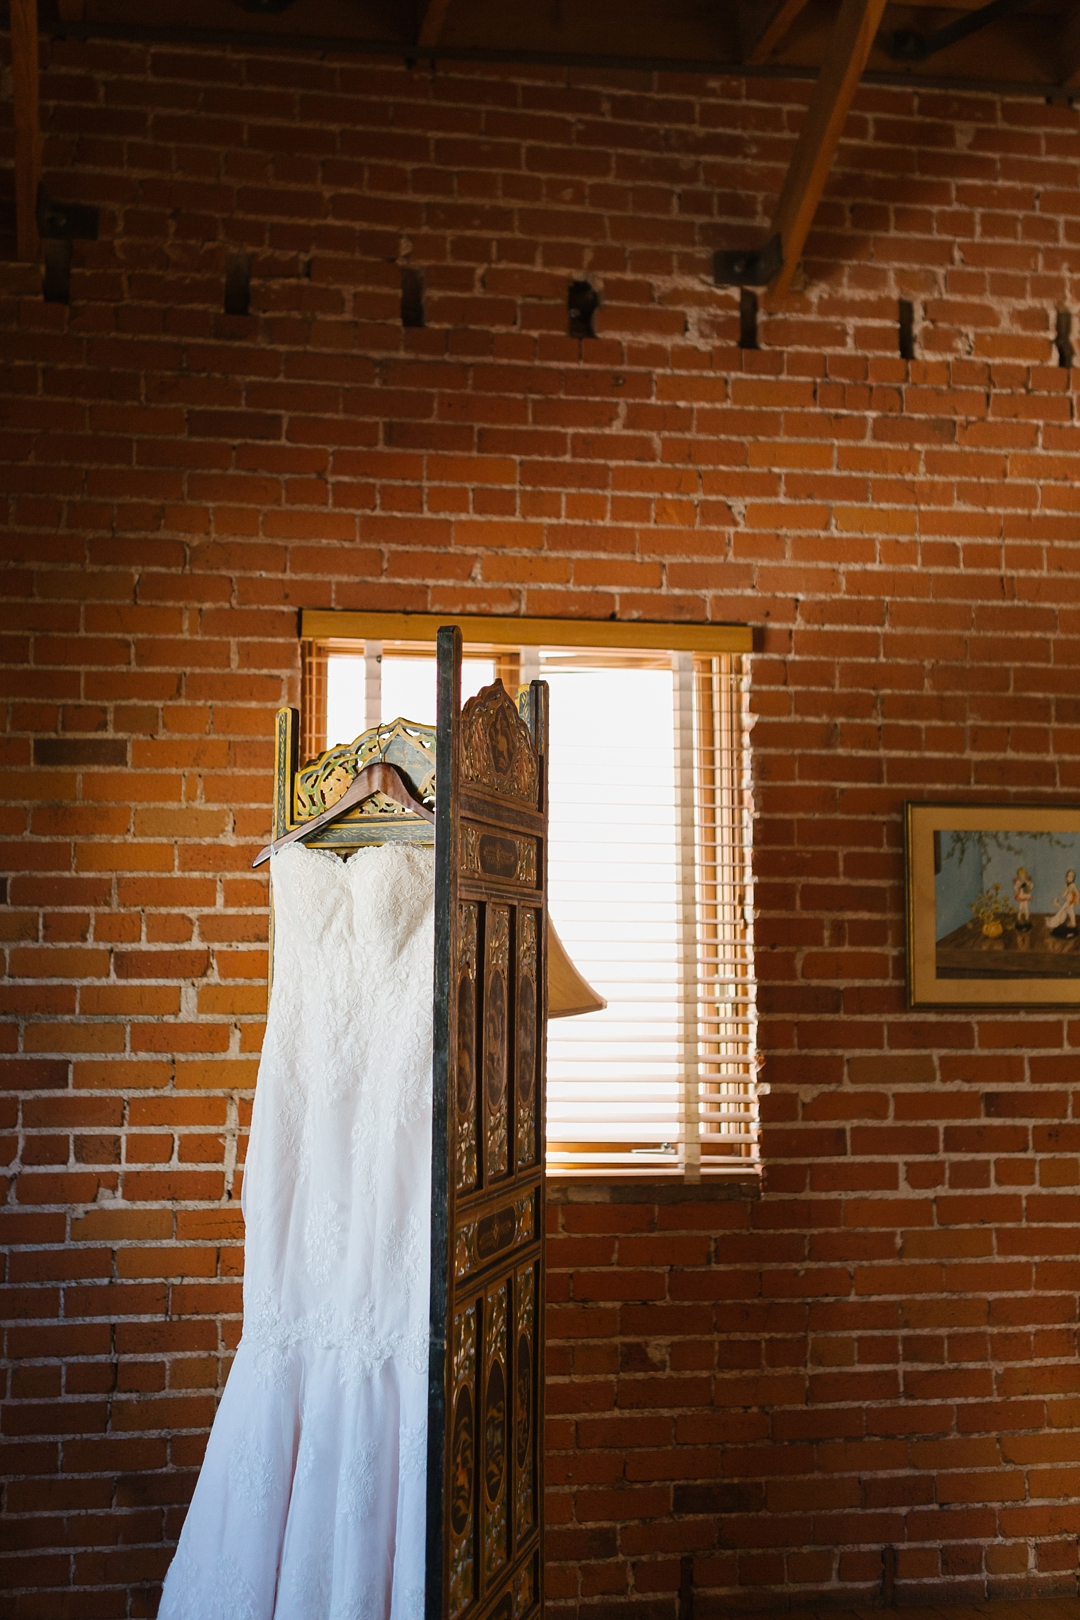 wedding gown hangs against brick wall at Carondelet House